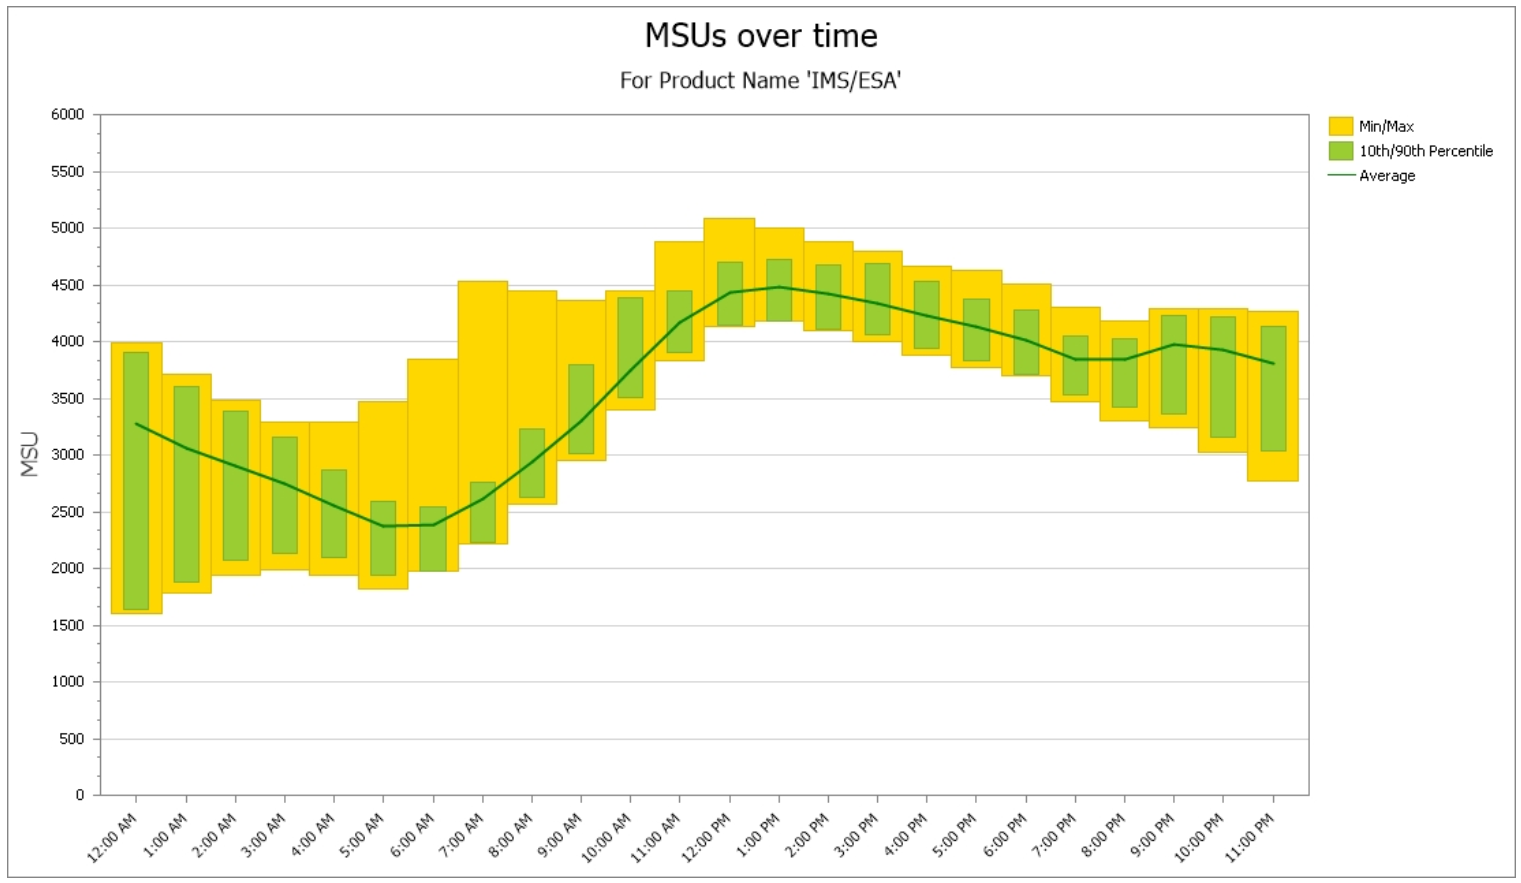 monthly peak 4hra time of day profile of product MSUs